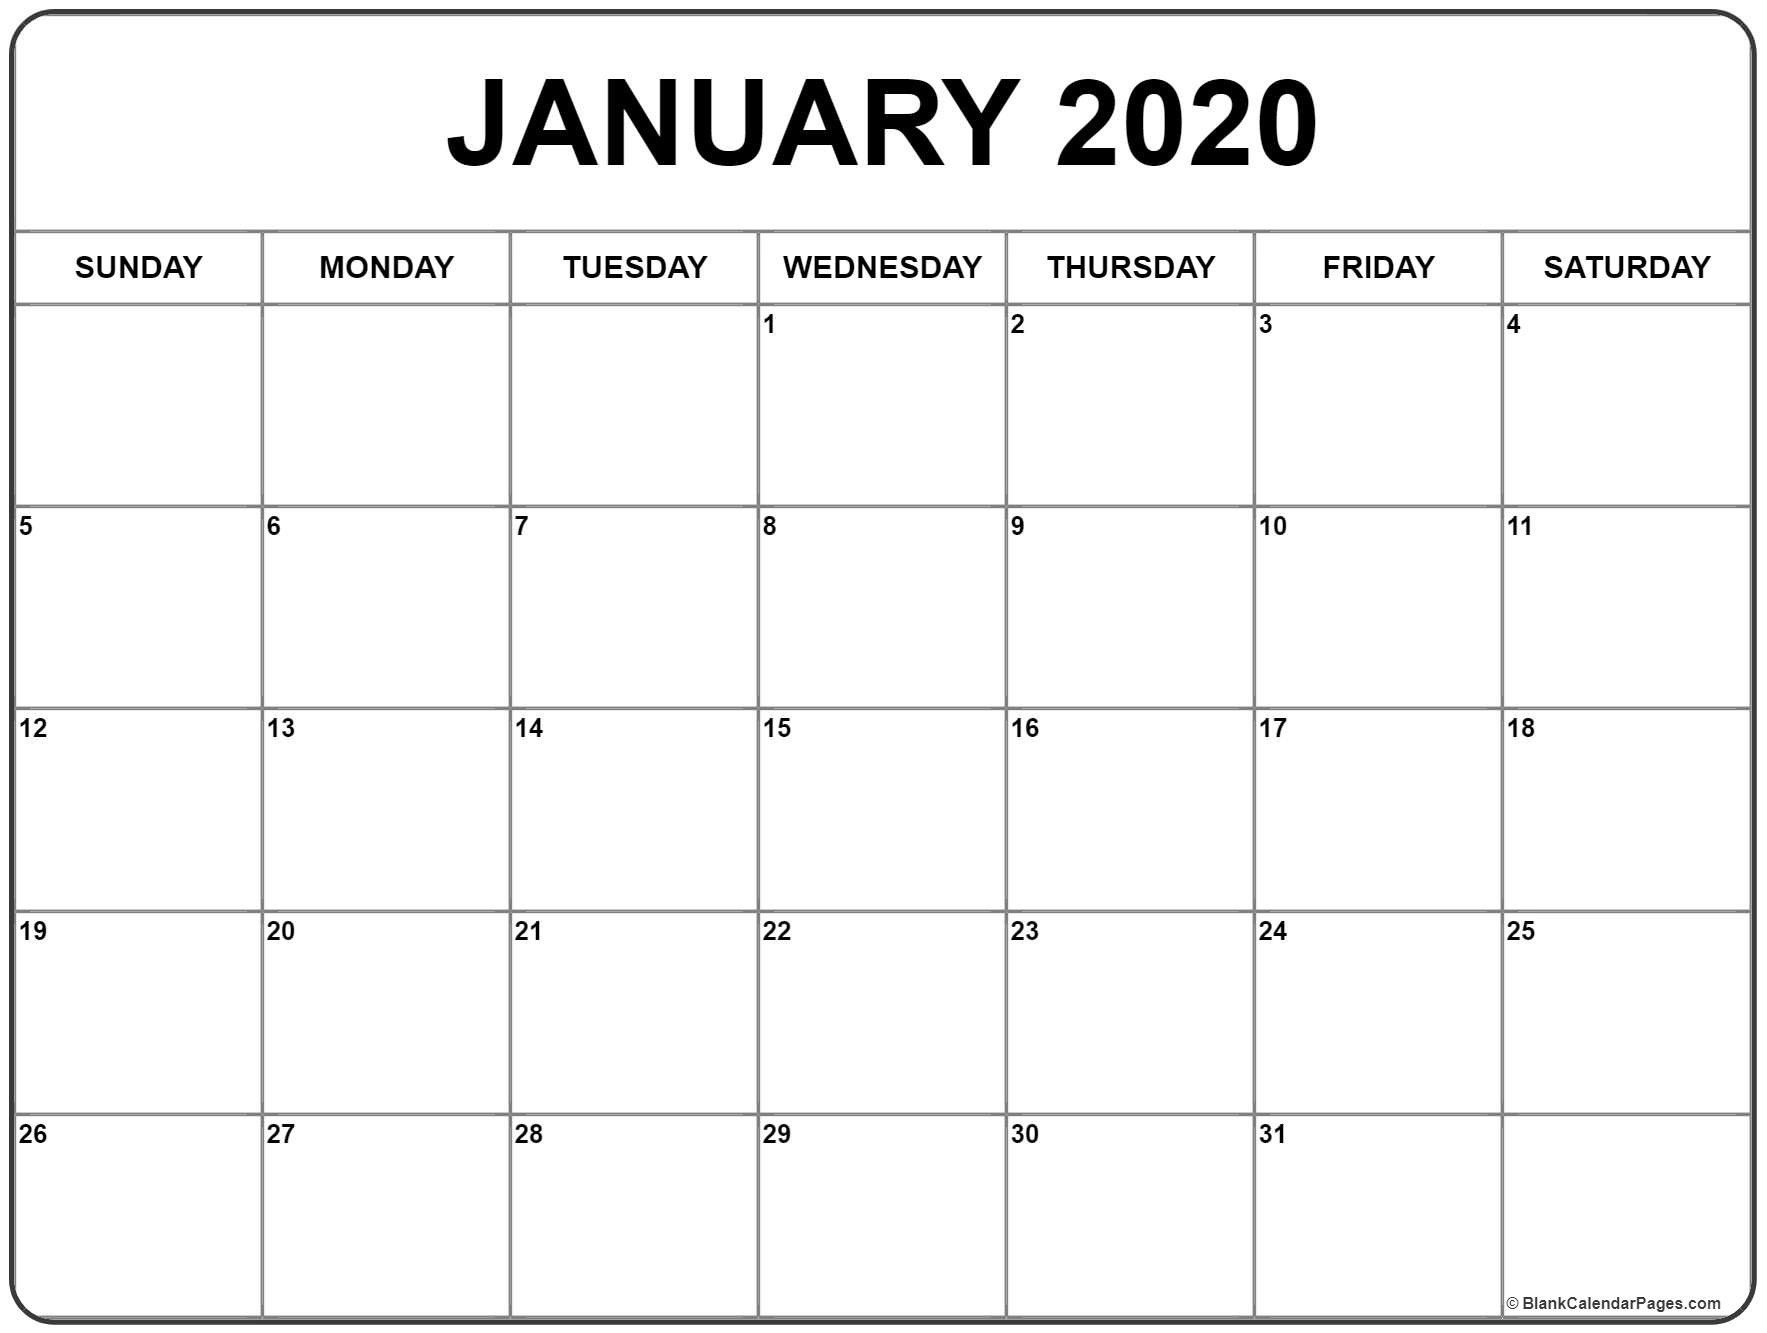 2020 Blank Calendar Canada | Monthly Printable Calender Extraordinary January 2020 Printable Calendar Canada